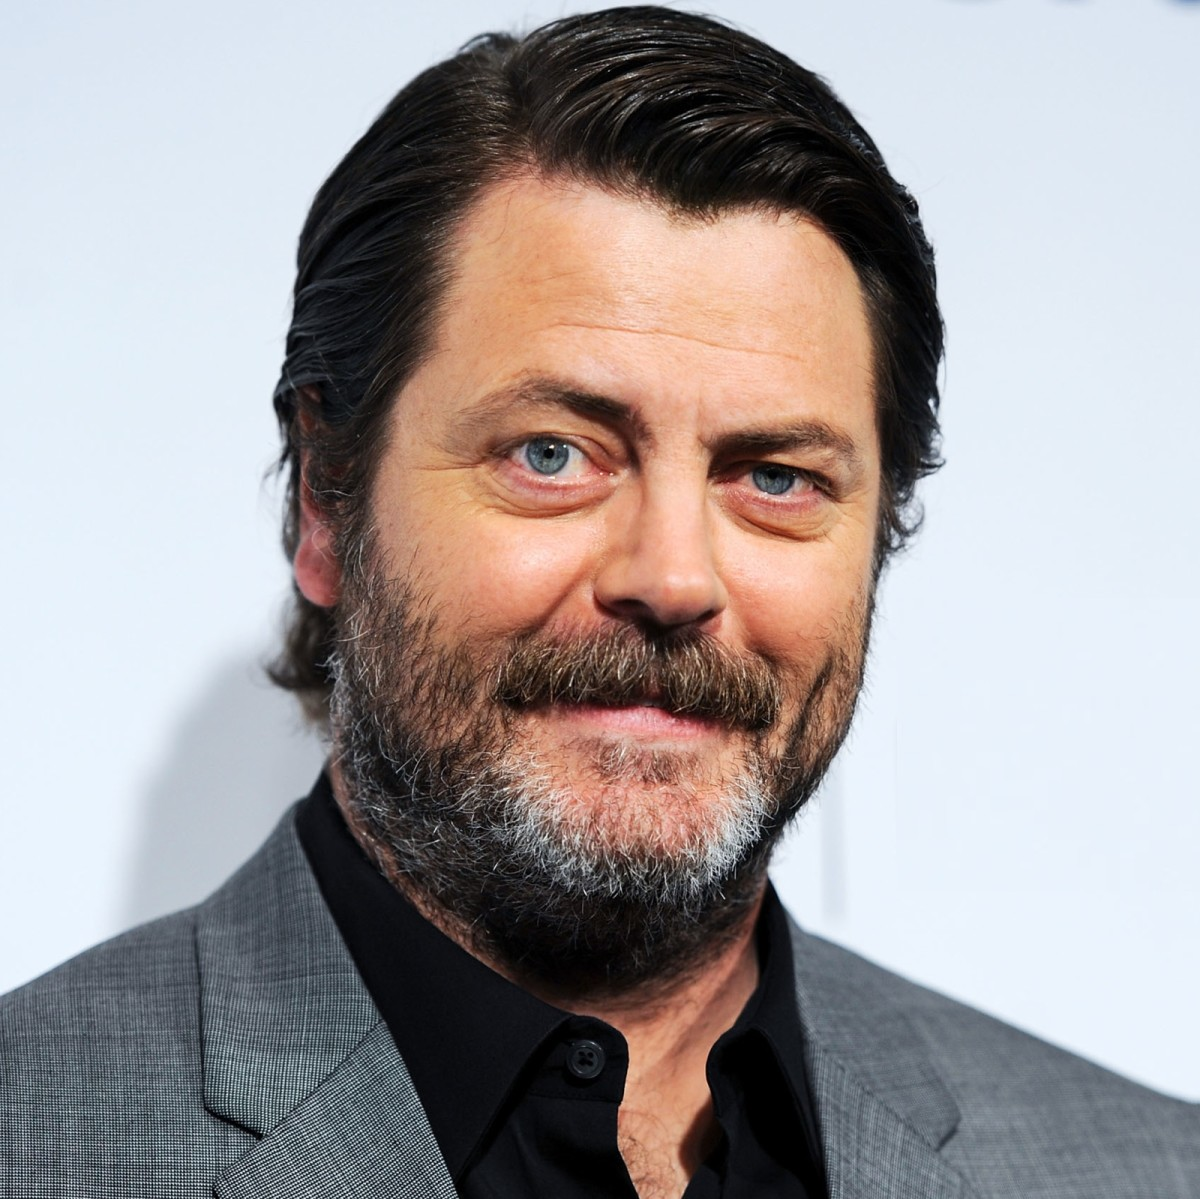 Nick Offerman photo via Getty Images